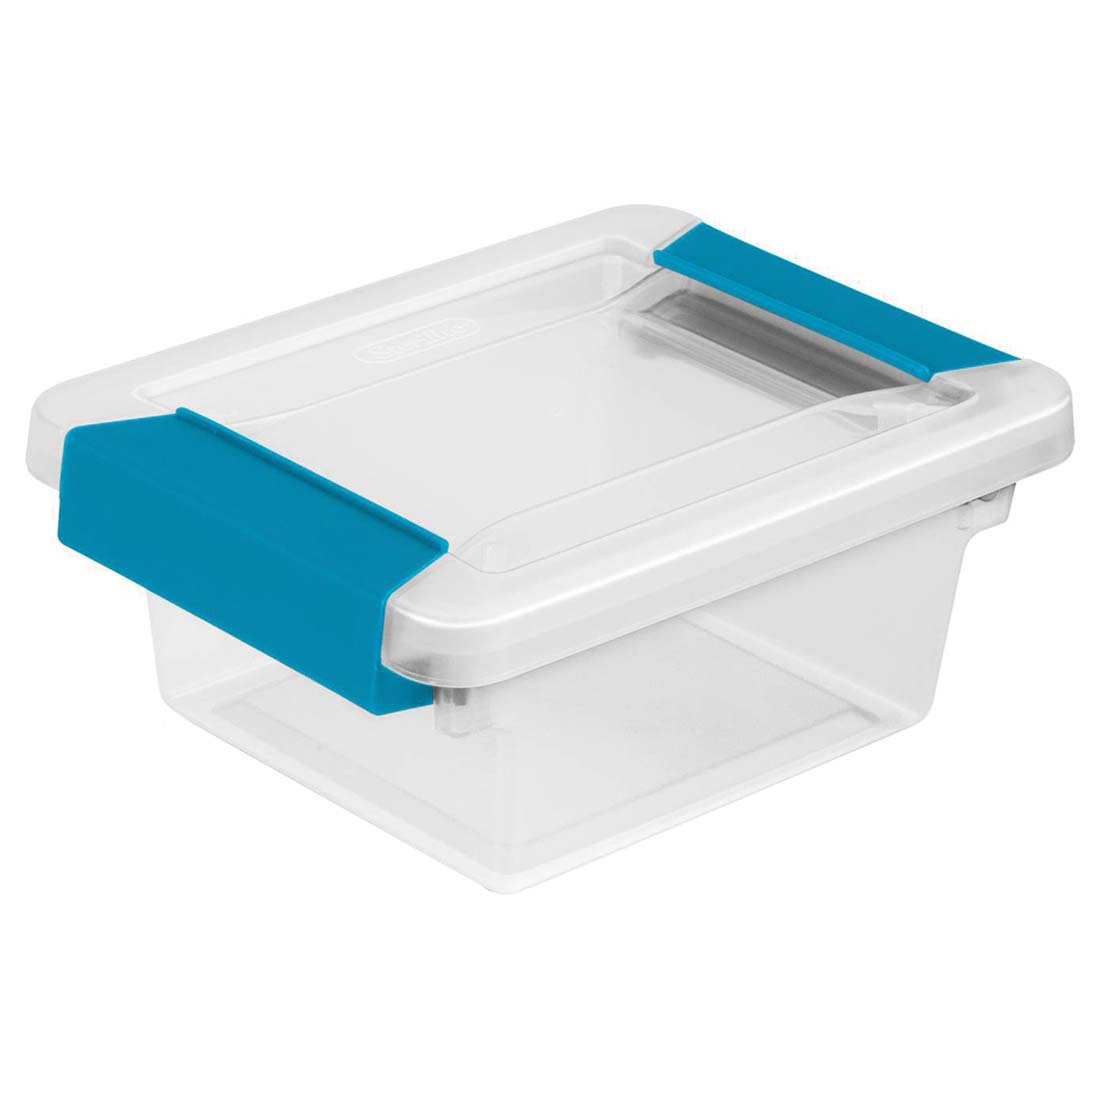 View STERILITE STORAGE BOX  6 X 5 X 2 INCHES WITH LOCKING LID **MADE IN USA**